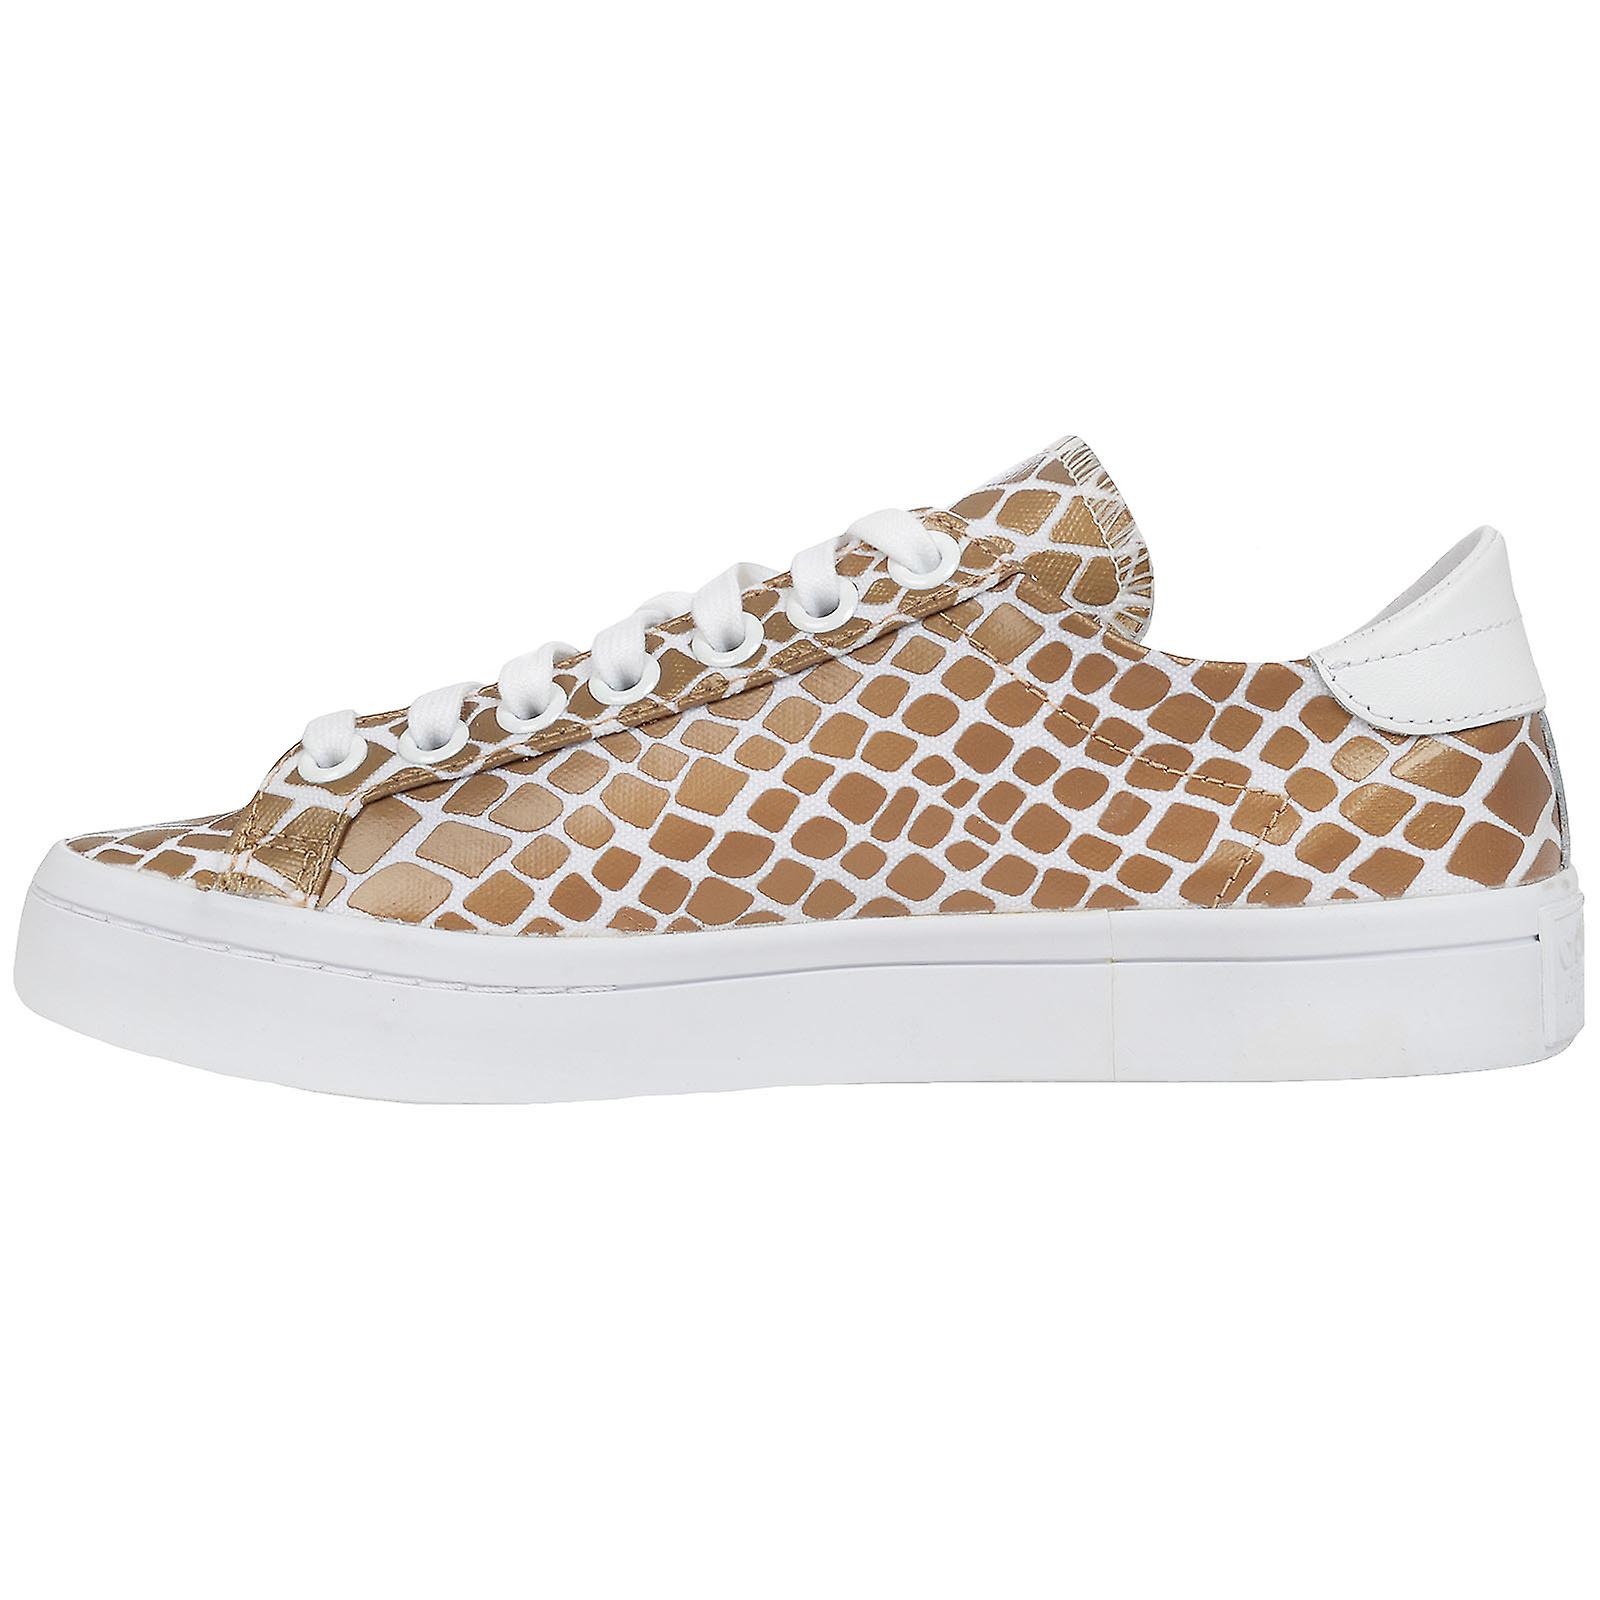 the best attitude bae91 17a80 adidas Originals Womens Court Vantage Snake Skin Print Fashion Sneakers  Trainers